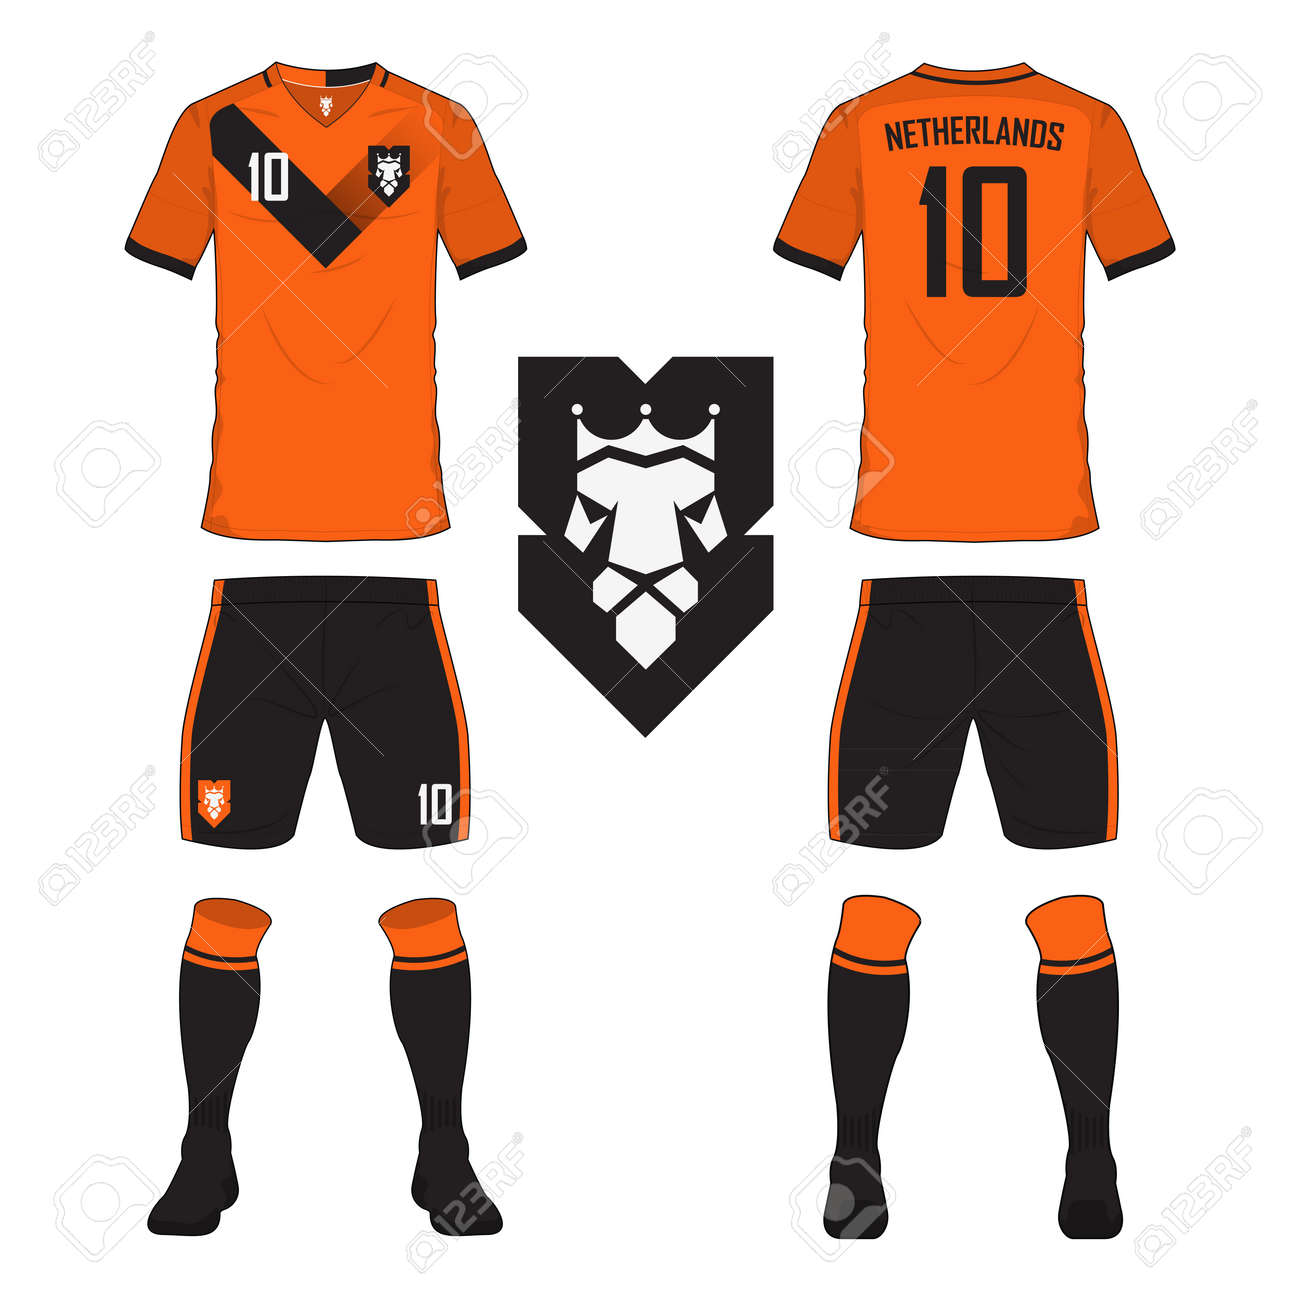 Set of soccer jersey or football kit template for Netherlands national  football team. Front and c50fb5c11